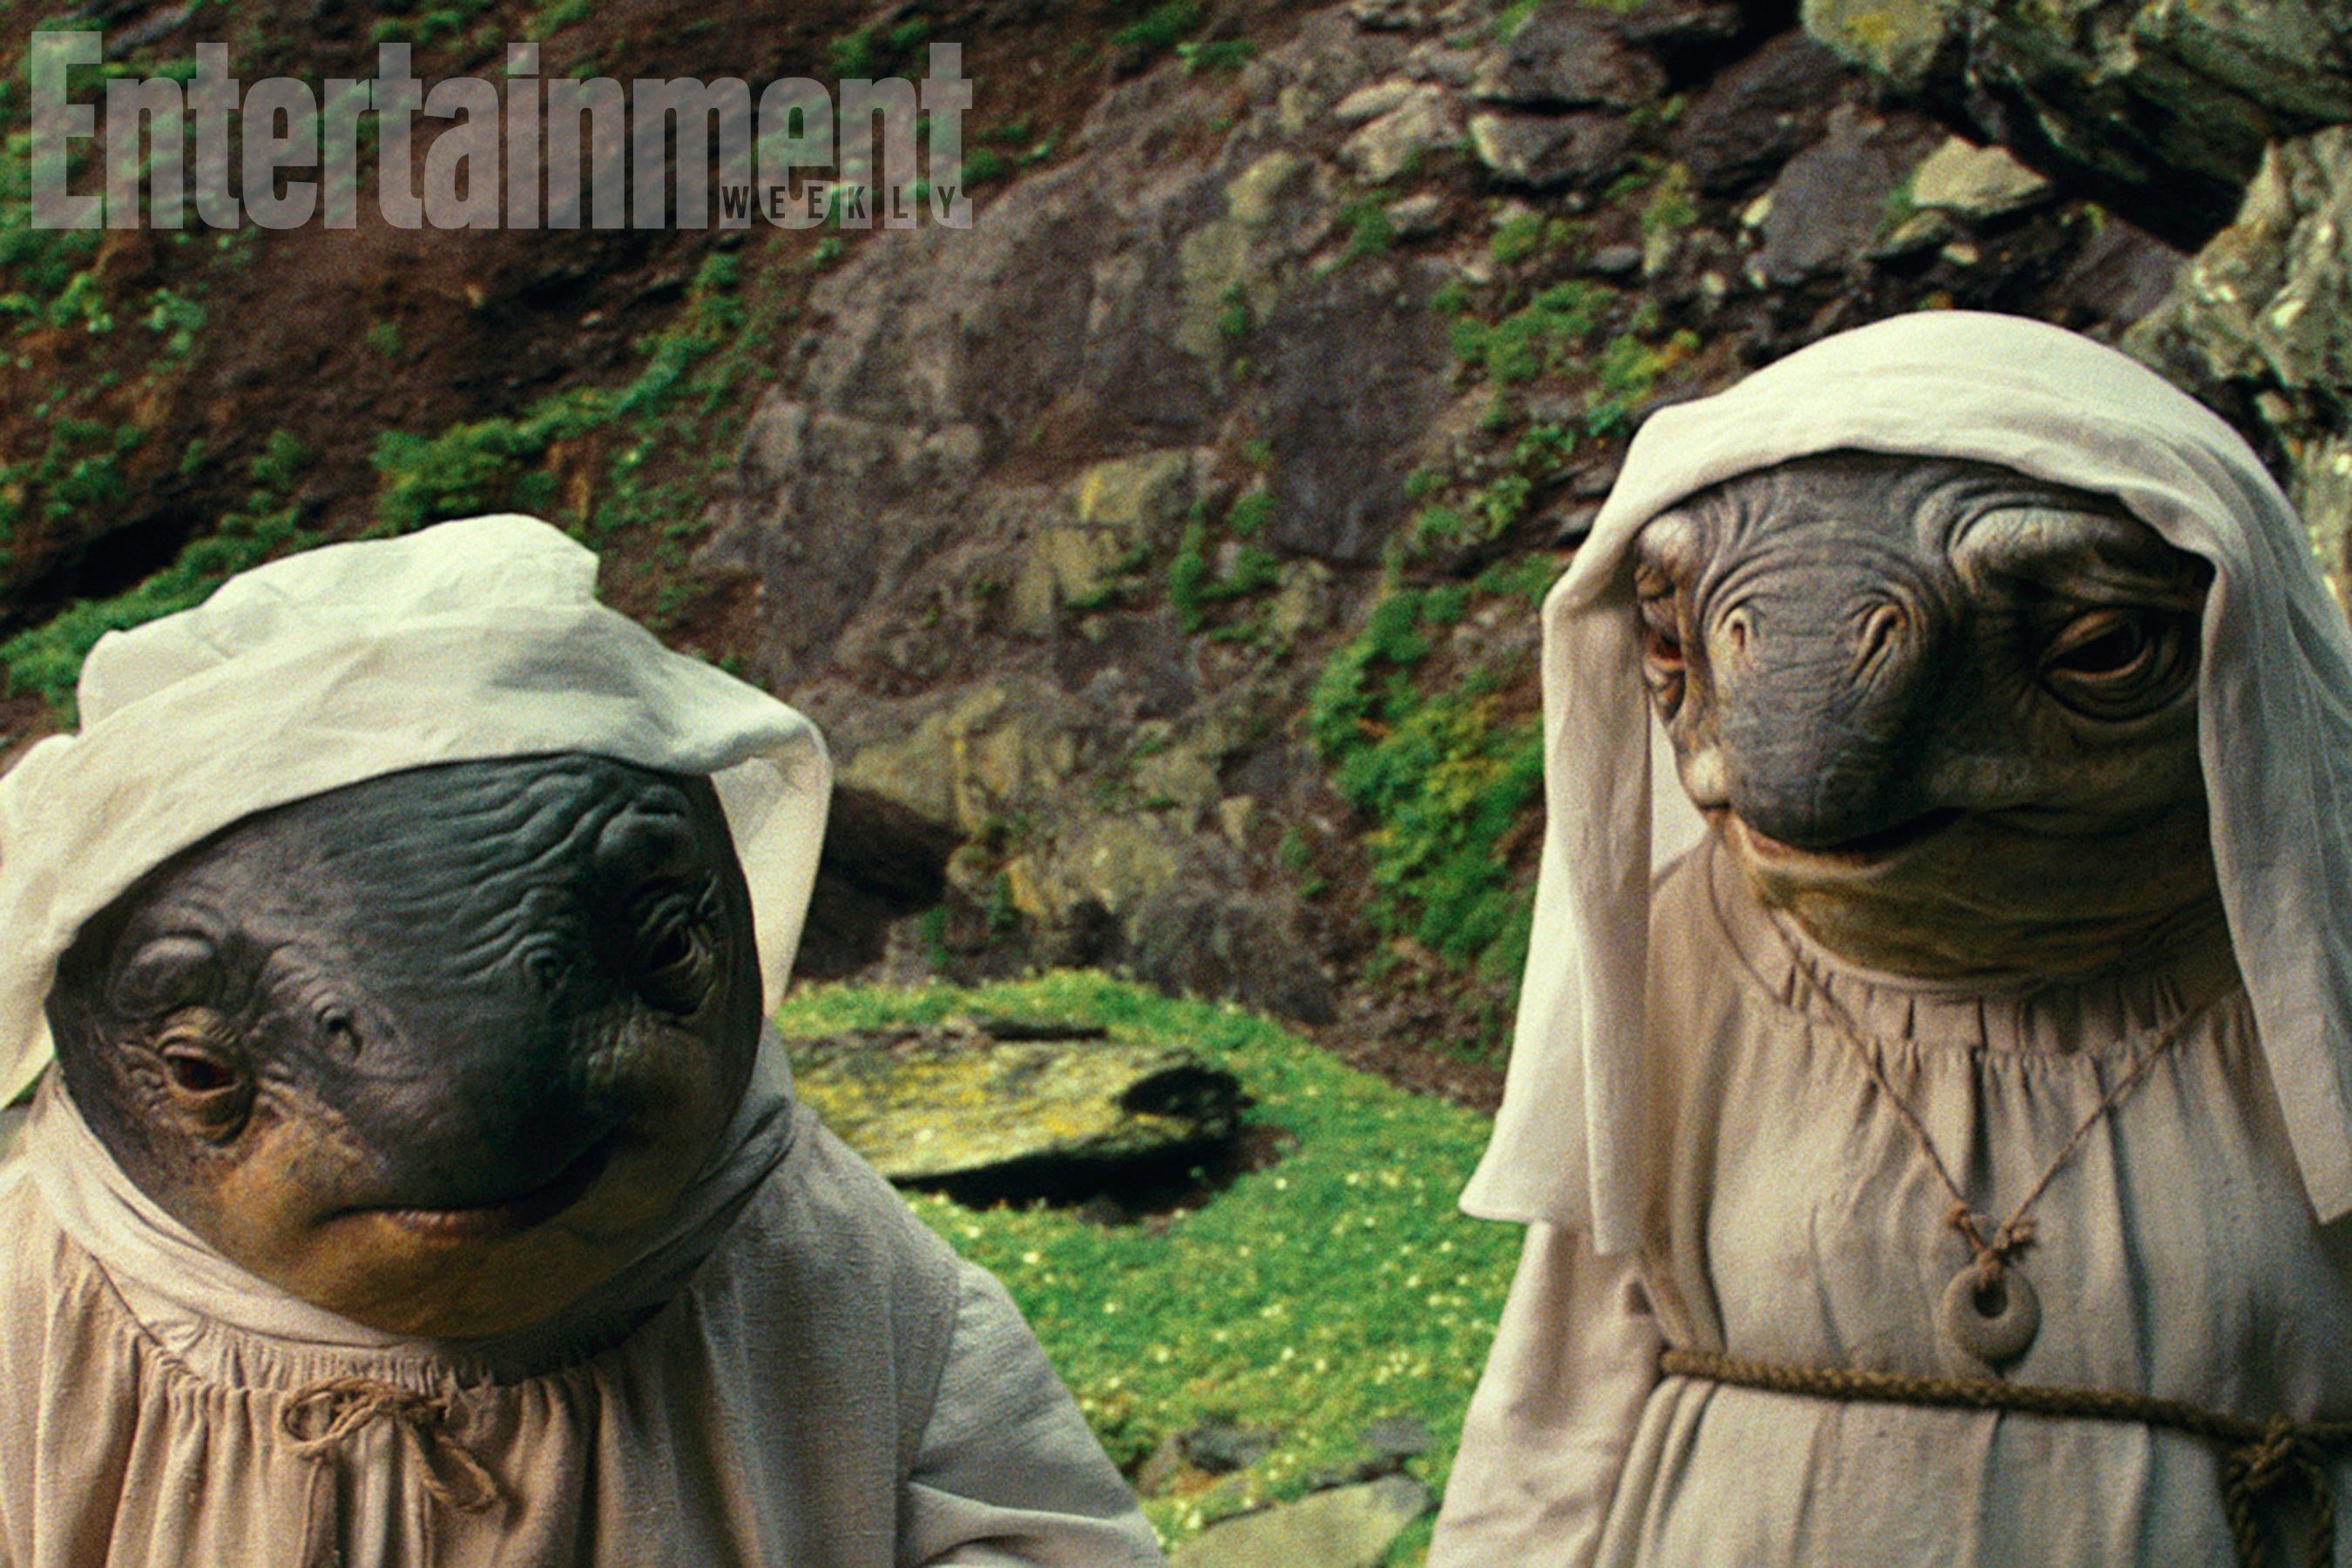 We're Extremely Curious AboutStar Wars' NewestAlien Creatures, The Caretakers